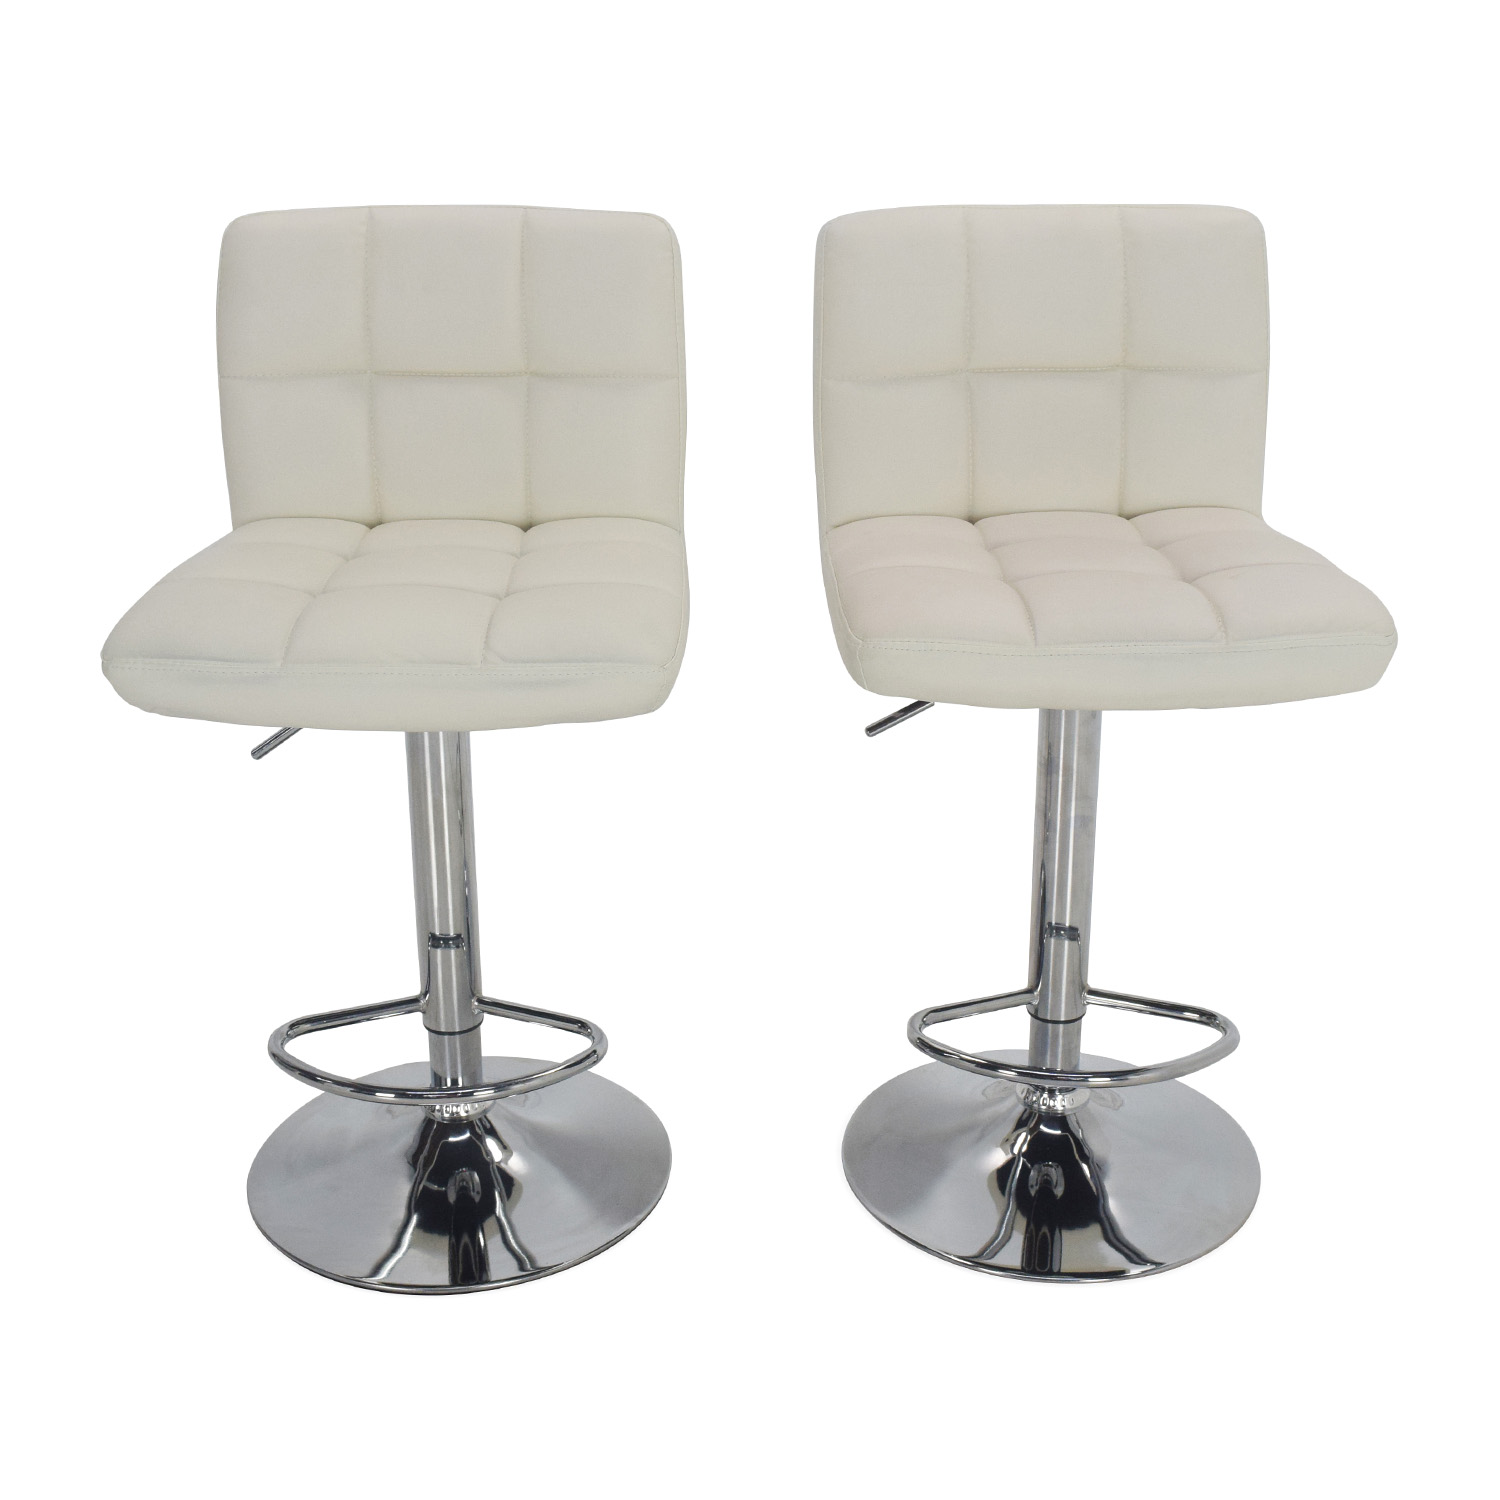 51 Off Roundhill Furniture Roundhill Furniture White Bar Stools Chairs